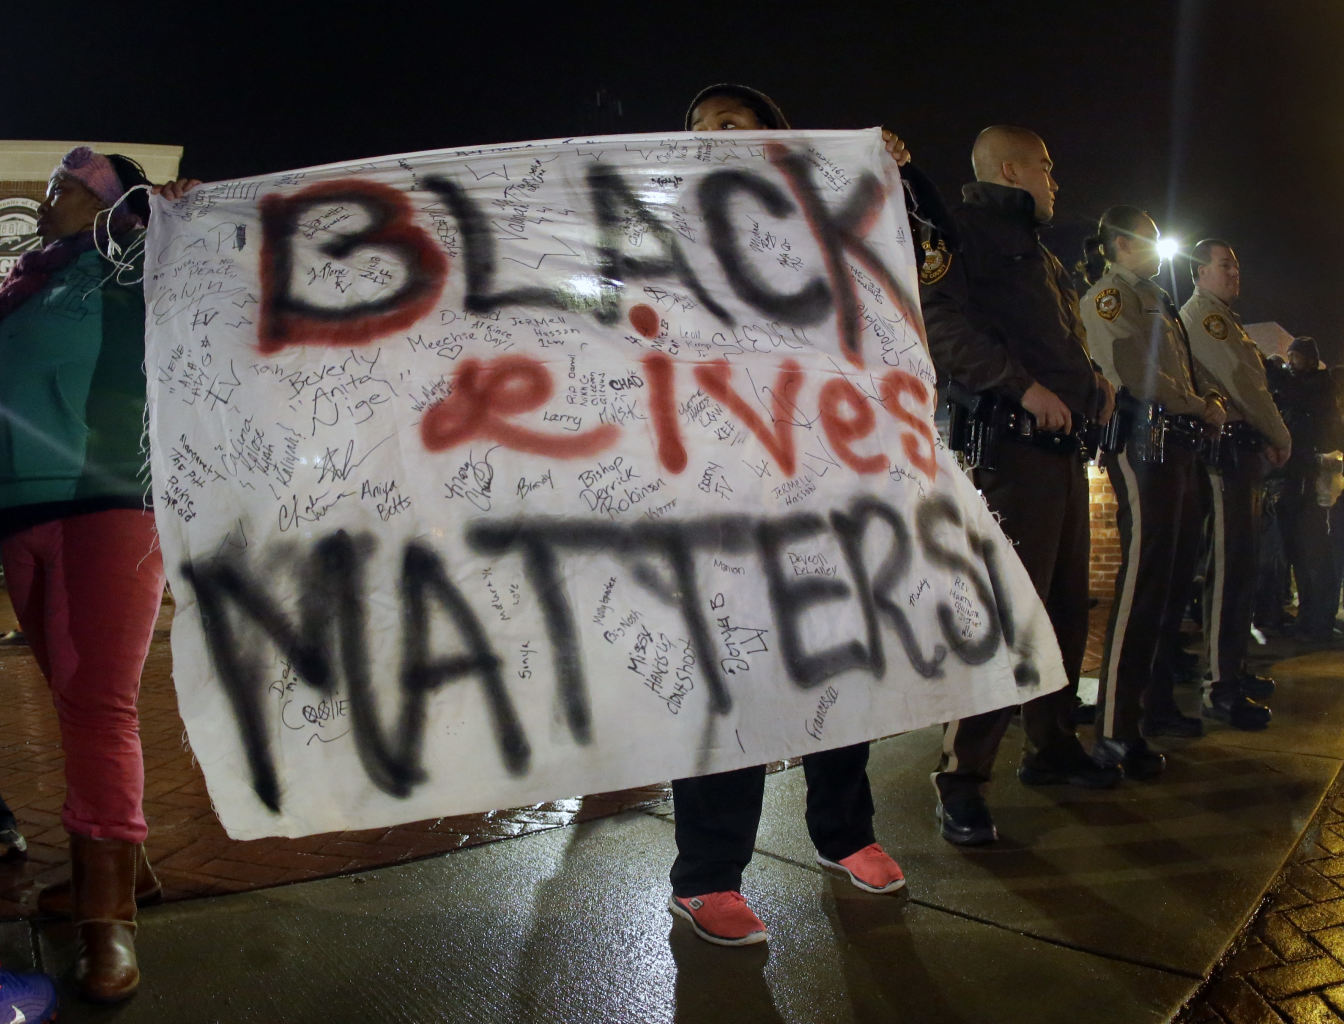 Crowd angry about the august shooting of unarmed black teenager by a